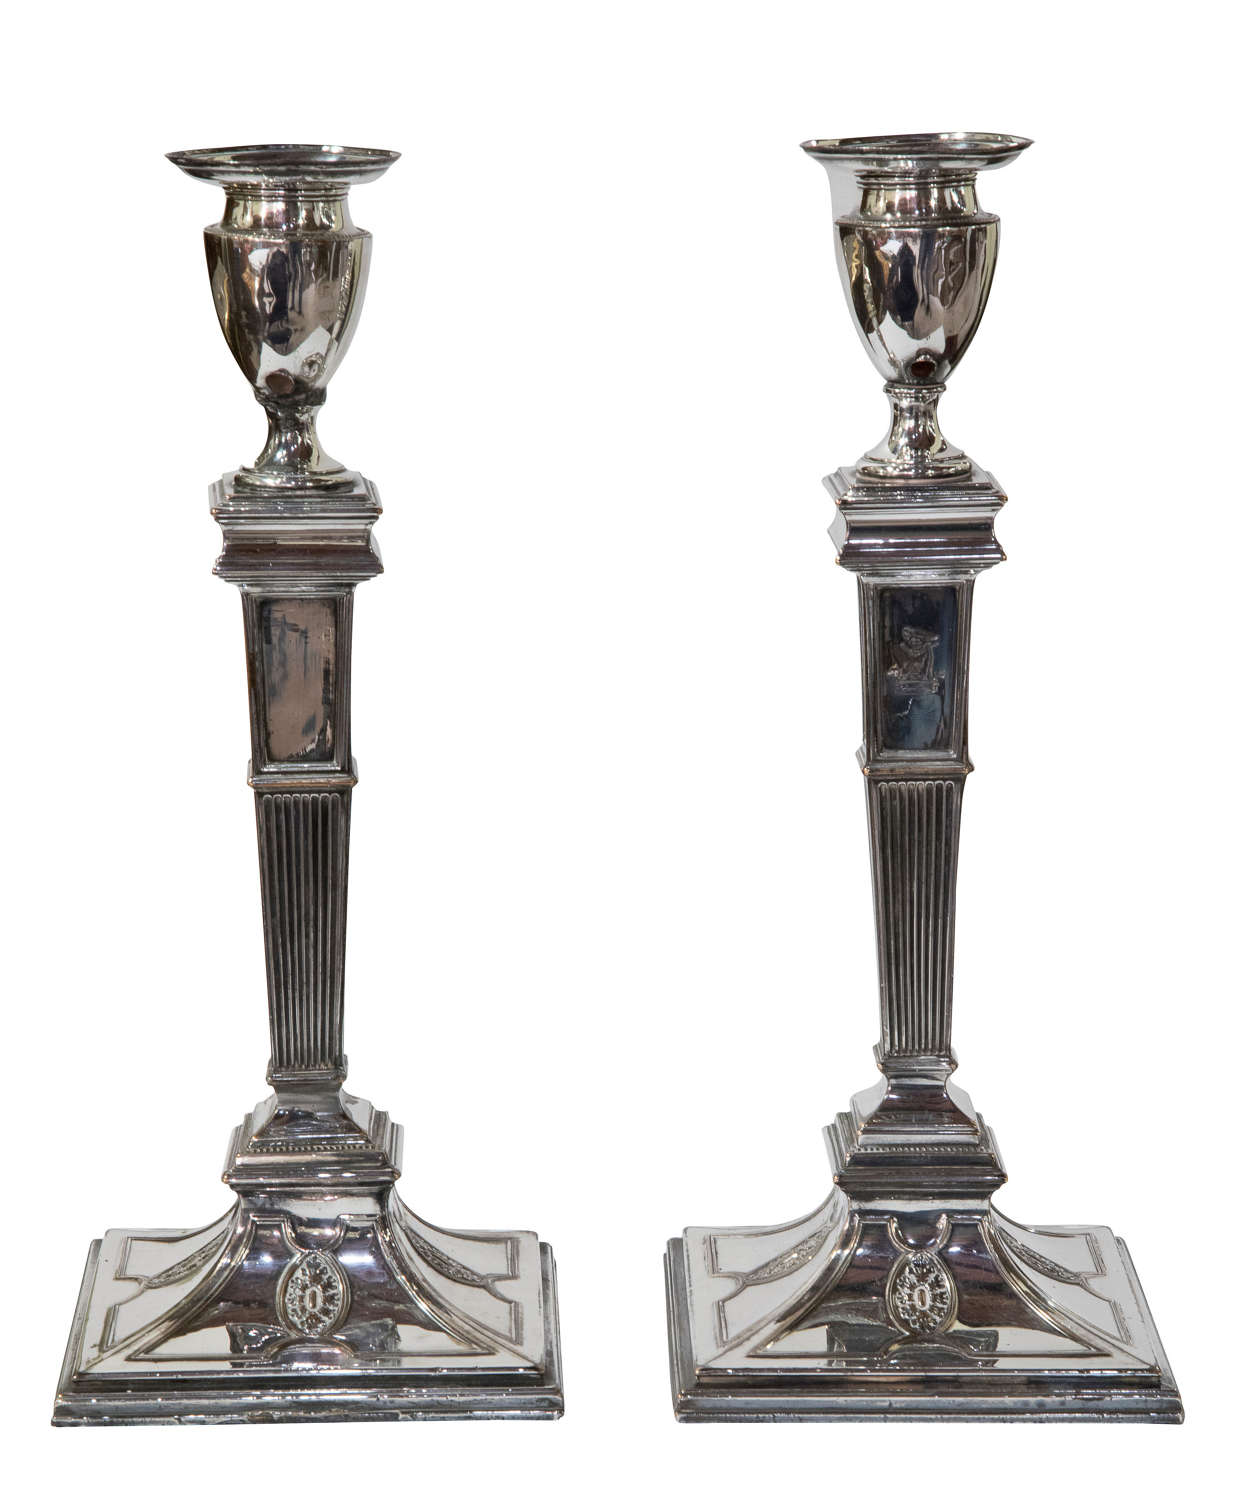 Pair of Old Sheffield plate candlesticks with vase shaped sconces